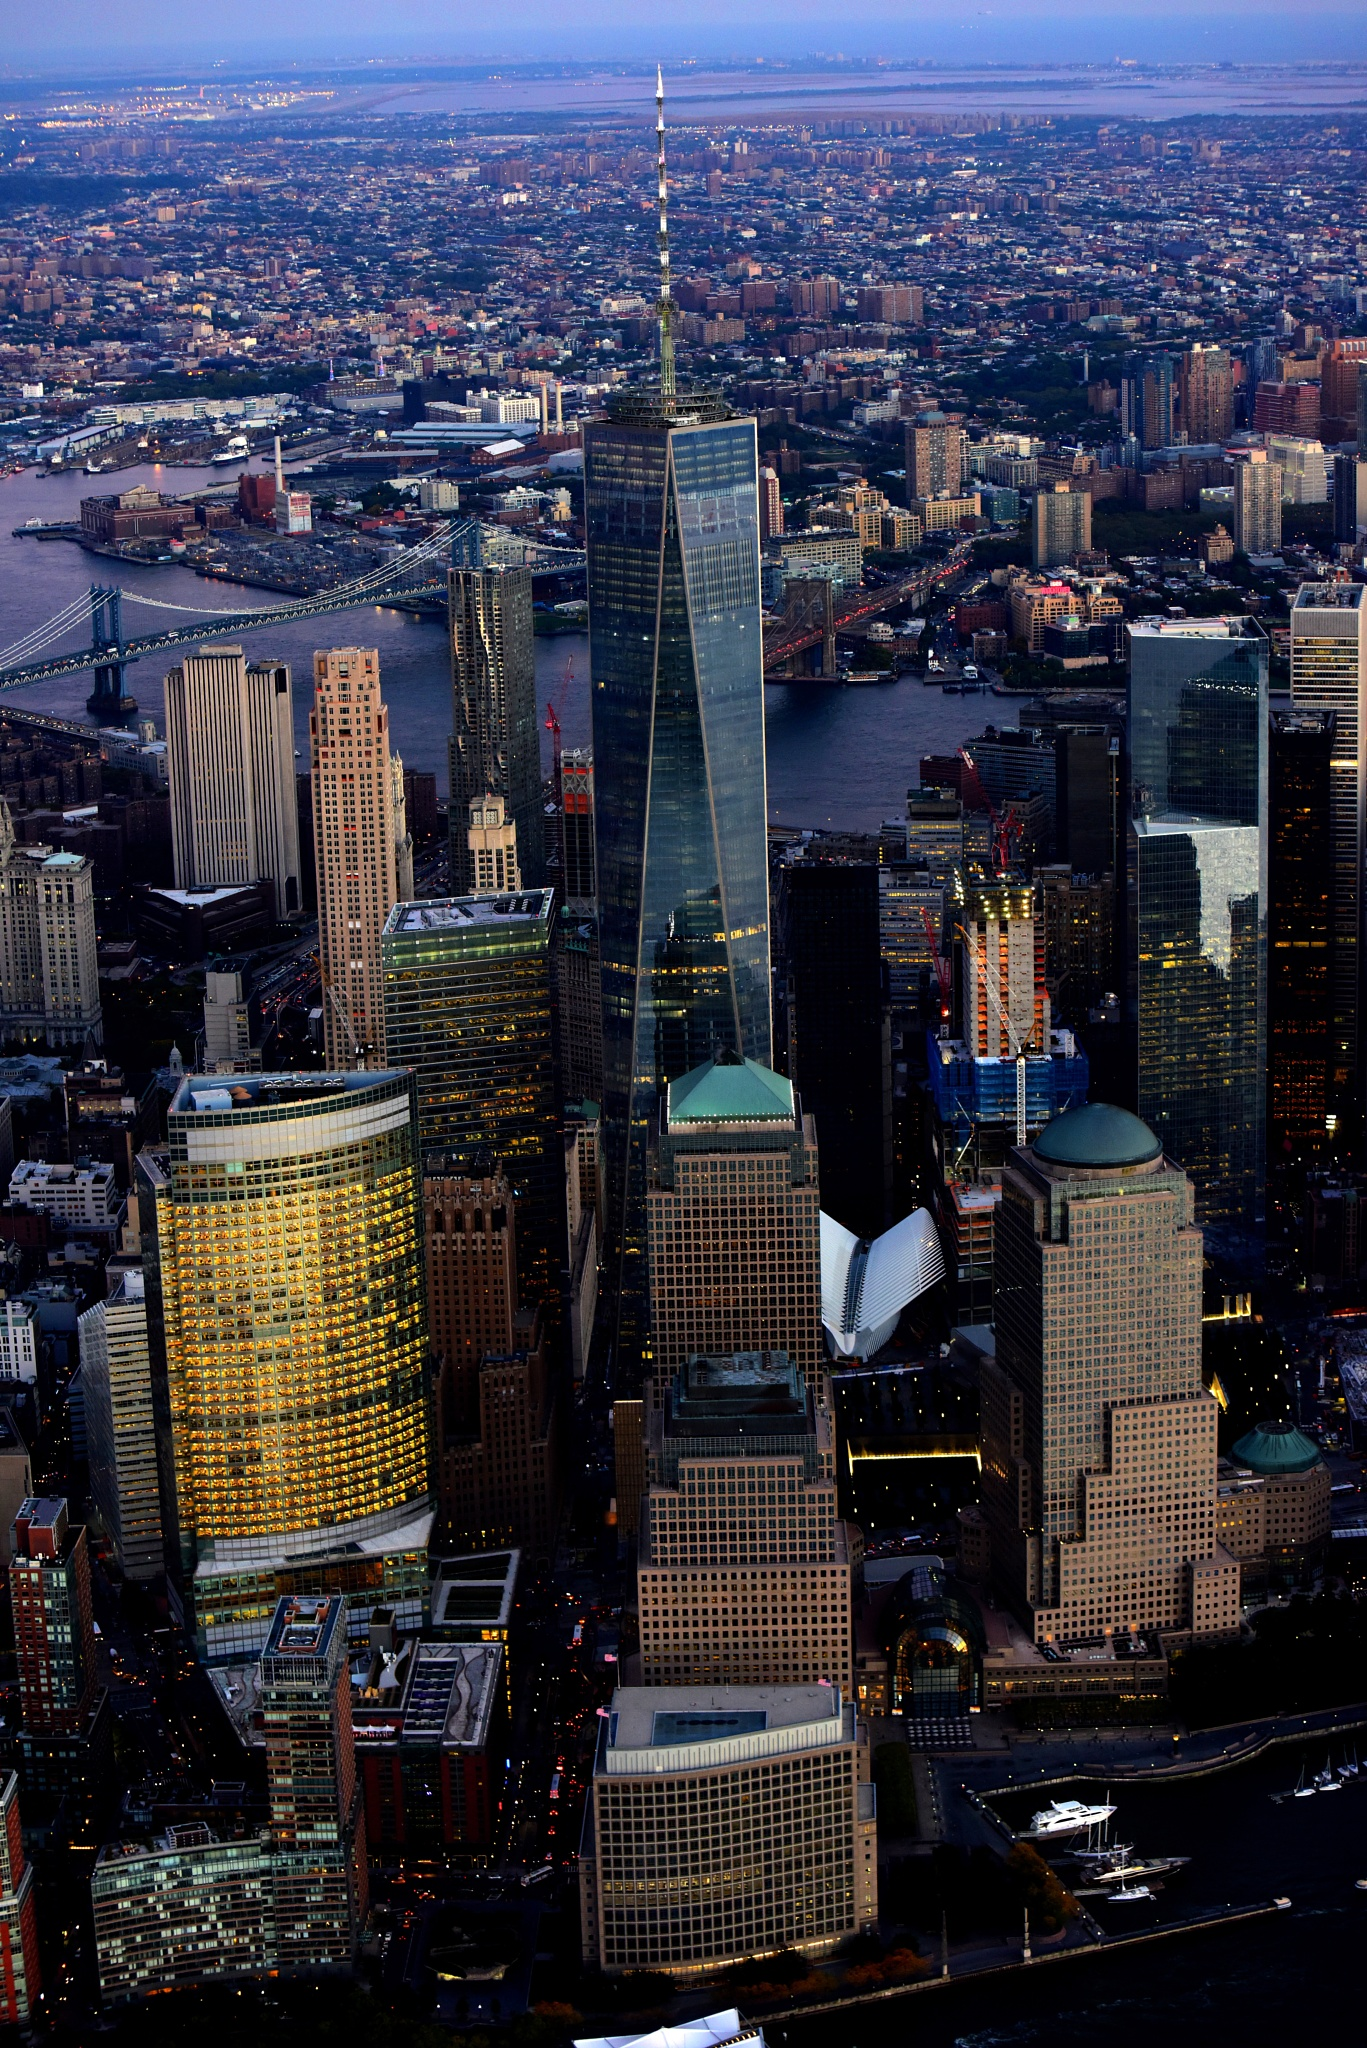 New York City Aerial at Dusk by Peter Massini